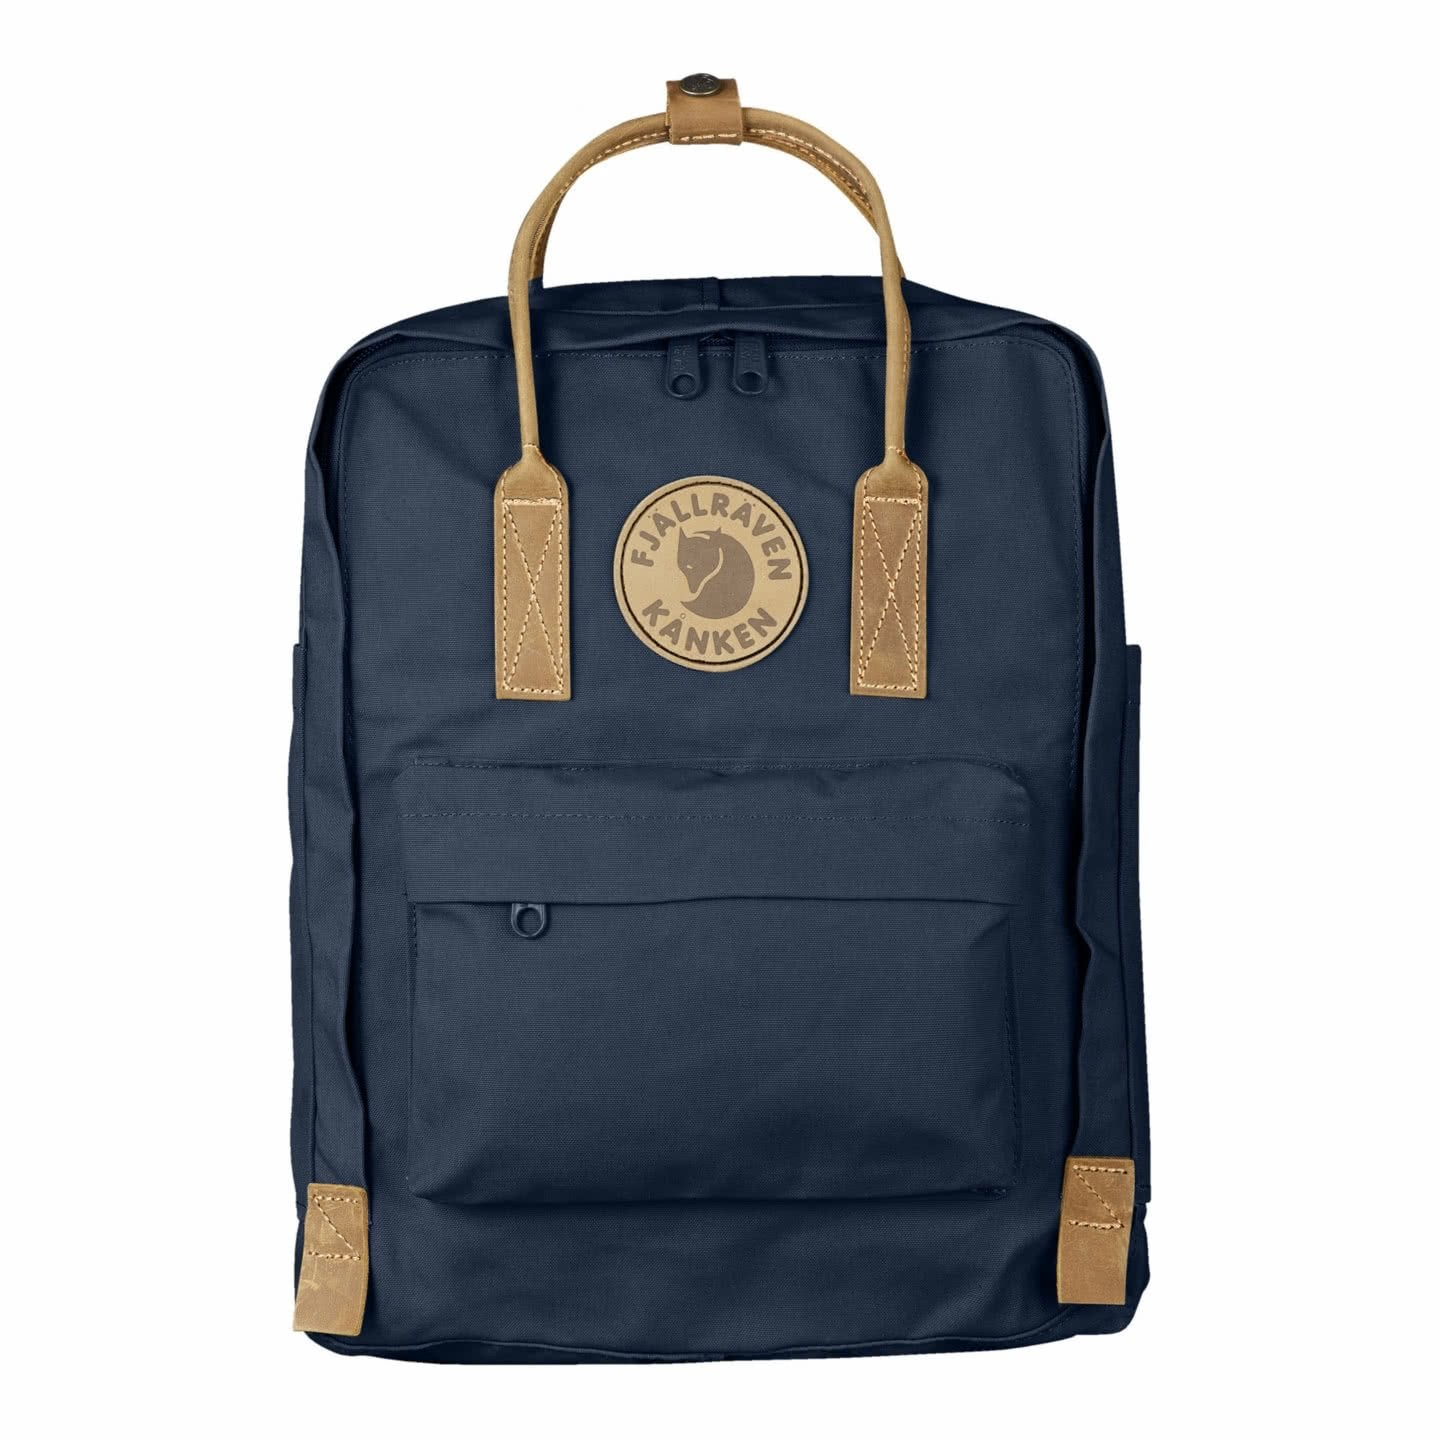 Fjallraven Kanken No.2 Backpack - Navy - Find Your Feet Australia Hobart Launceston Tasmania